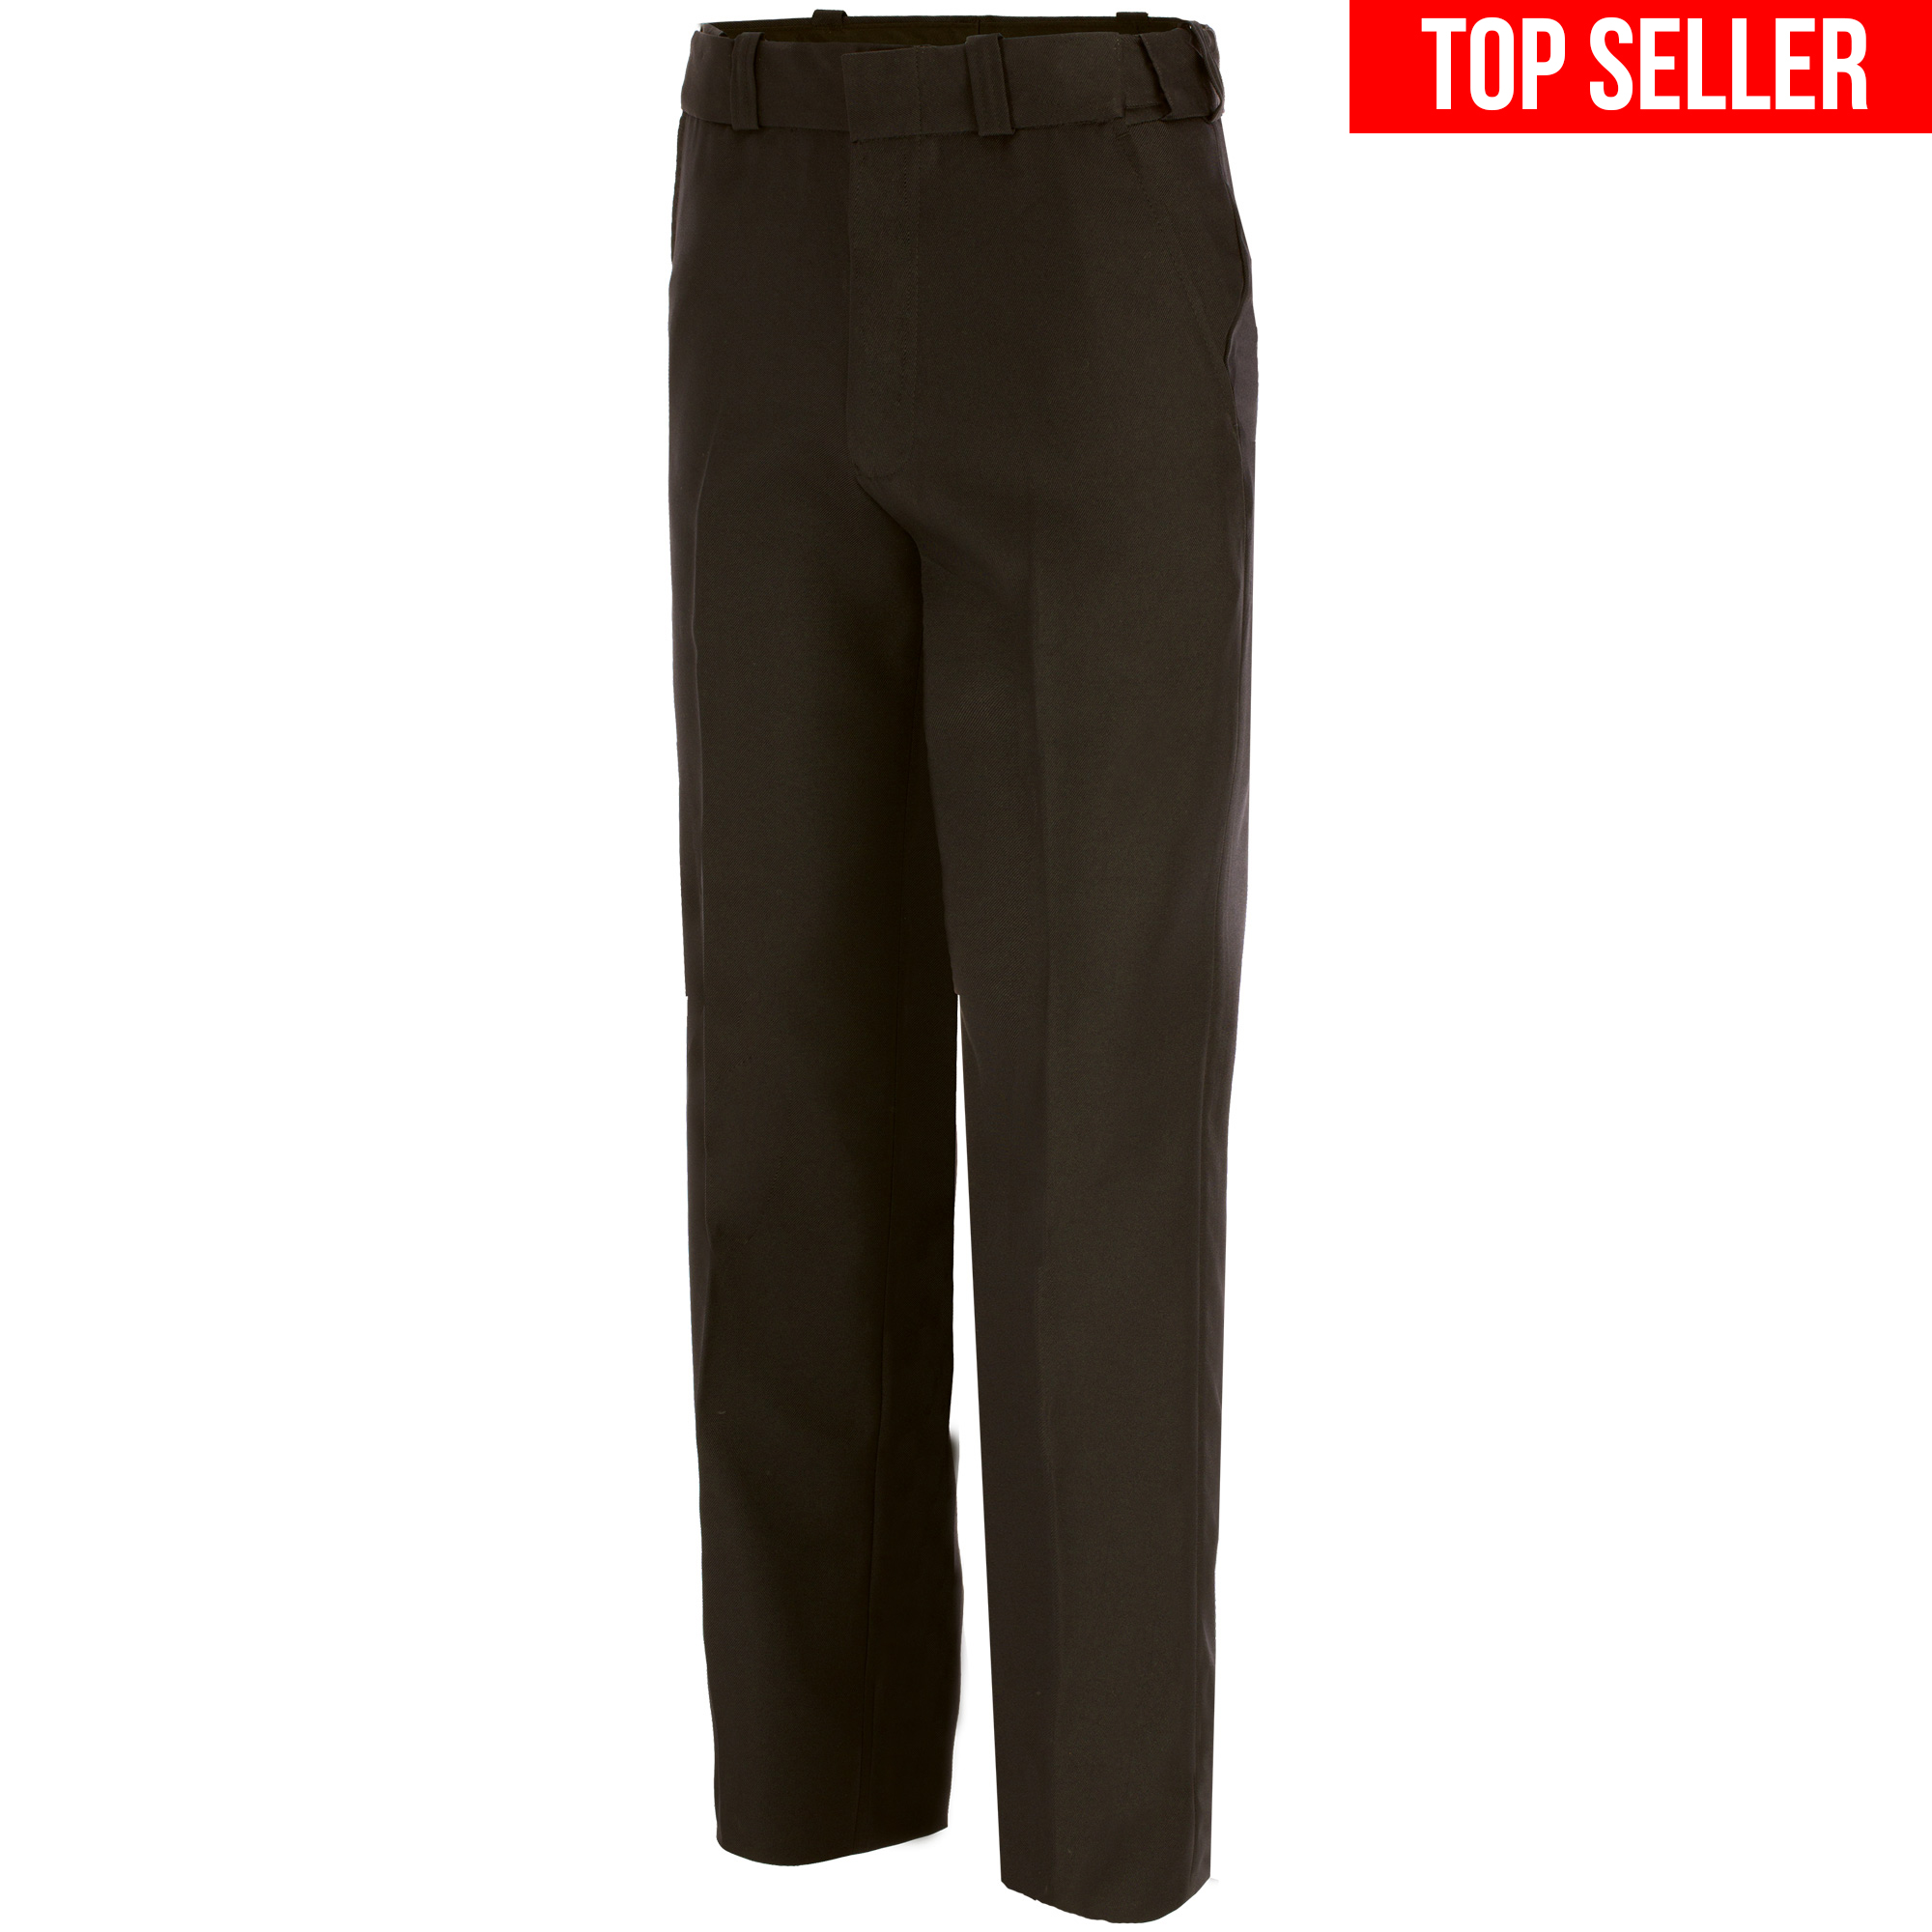 Tact Squad 7002 Polyester 4-Pocket Uniform Trousers - Women's-